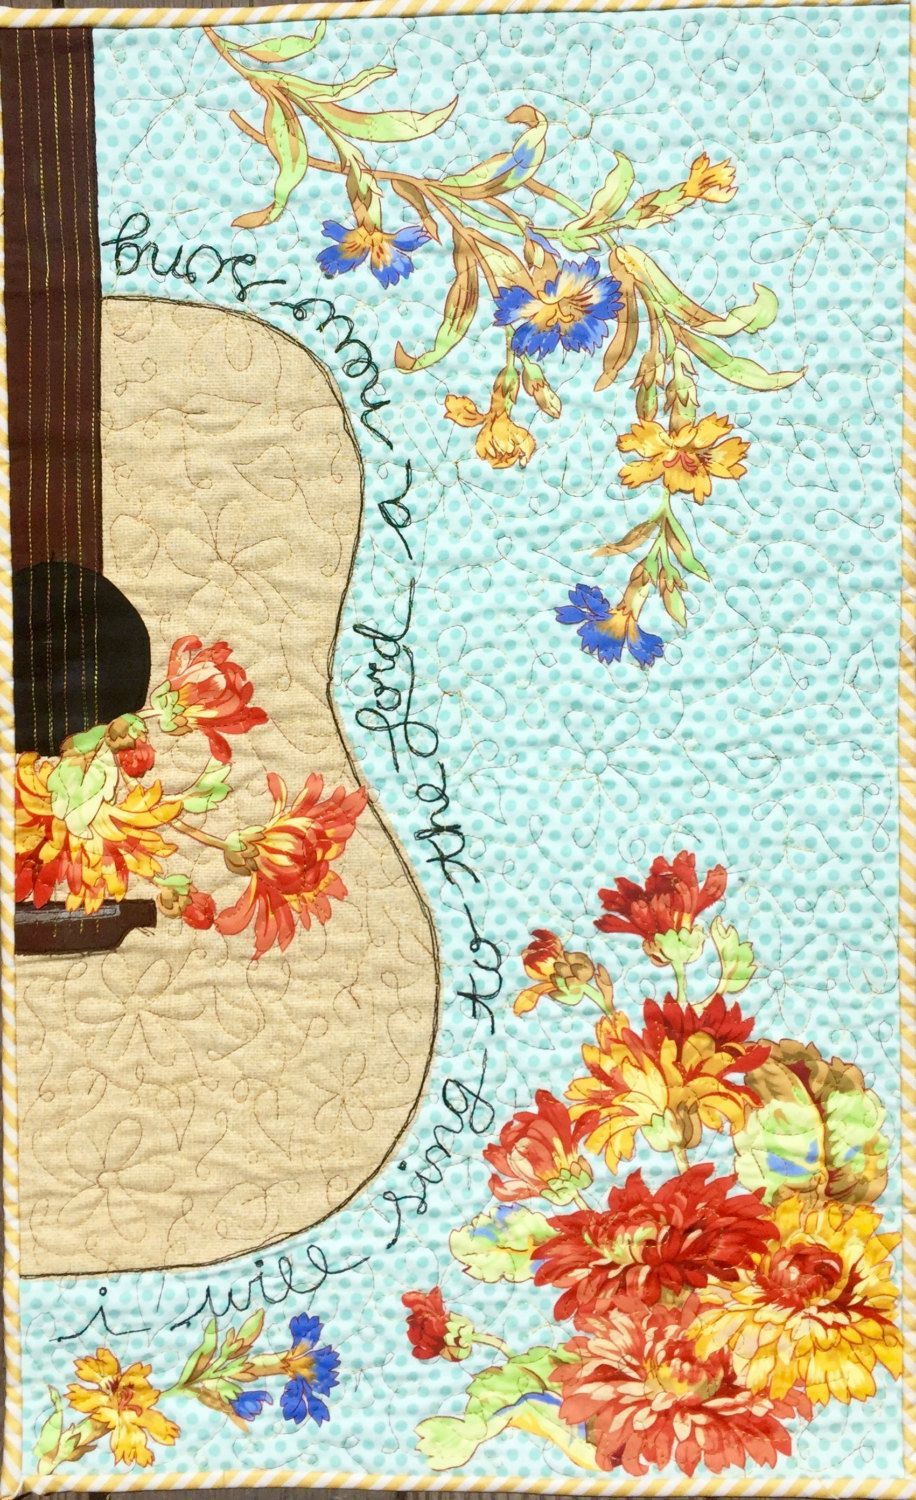 Christian art/music art quilt/guitar art quilt/scripture art quilt ...